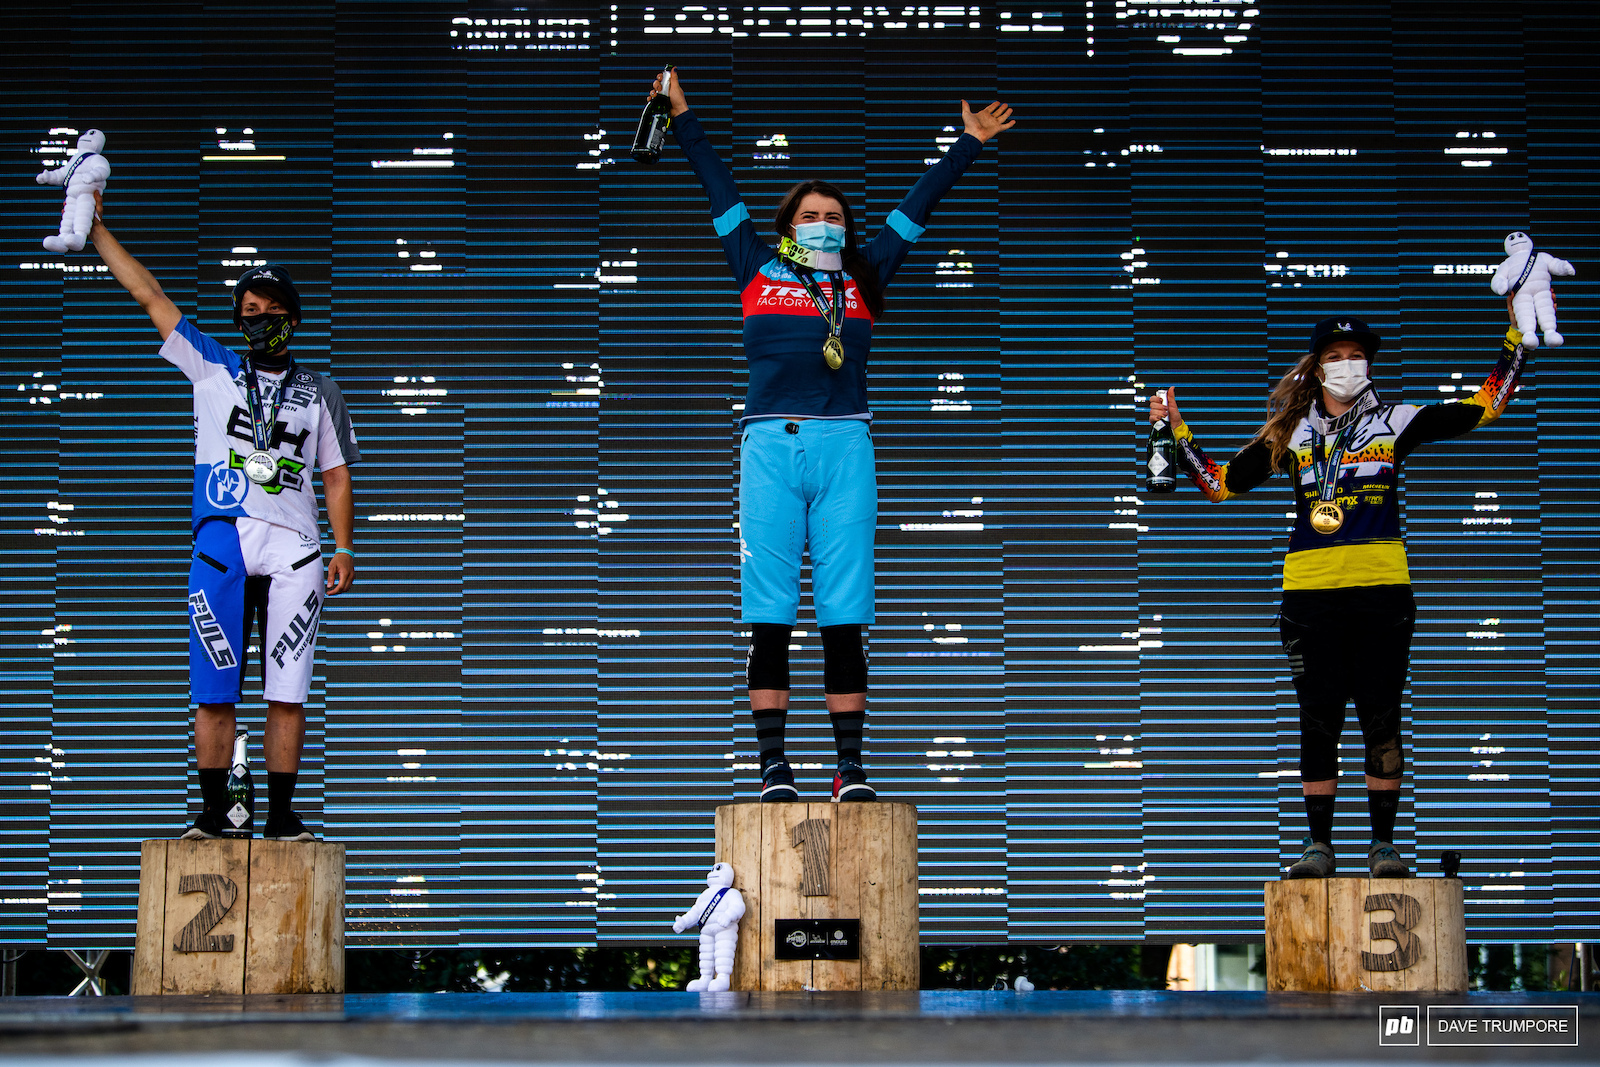 Harriet Harnden put the power down to take the win in front of Melanie Pugin and Noga Korem